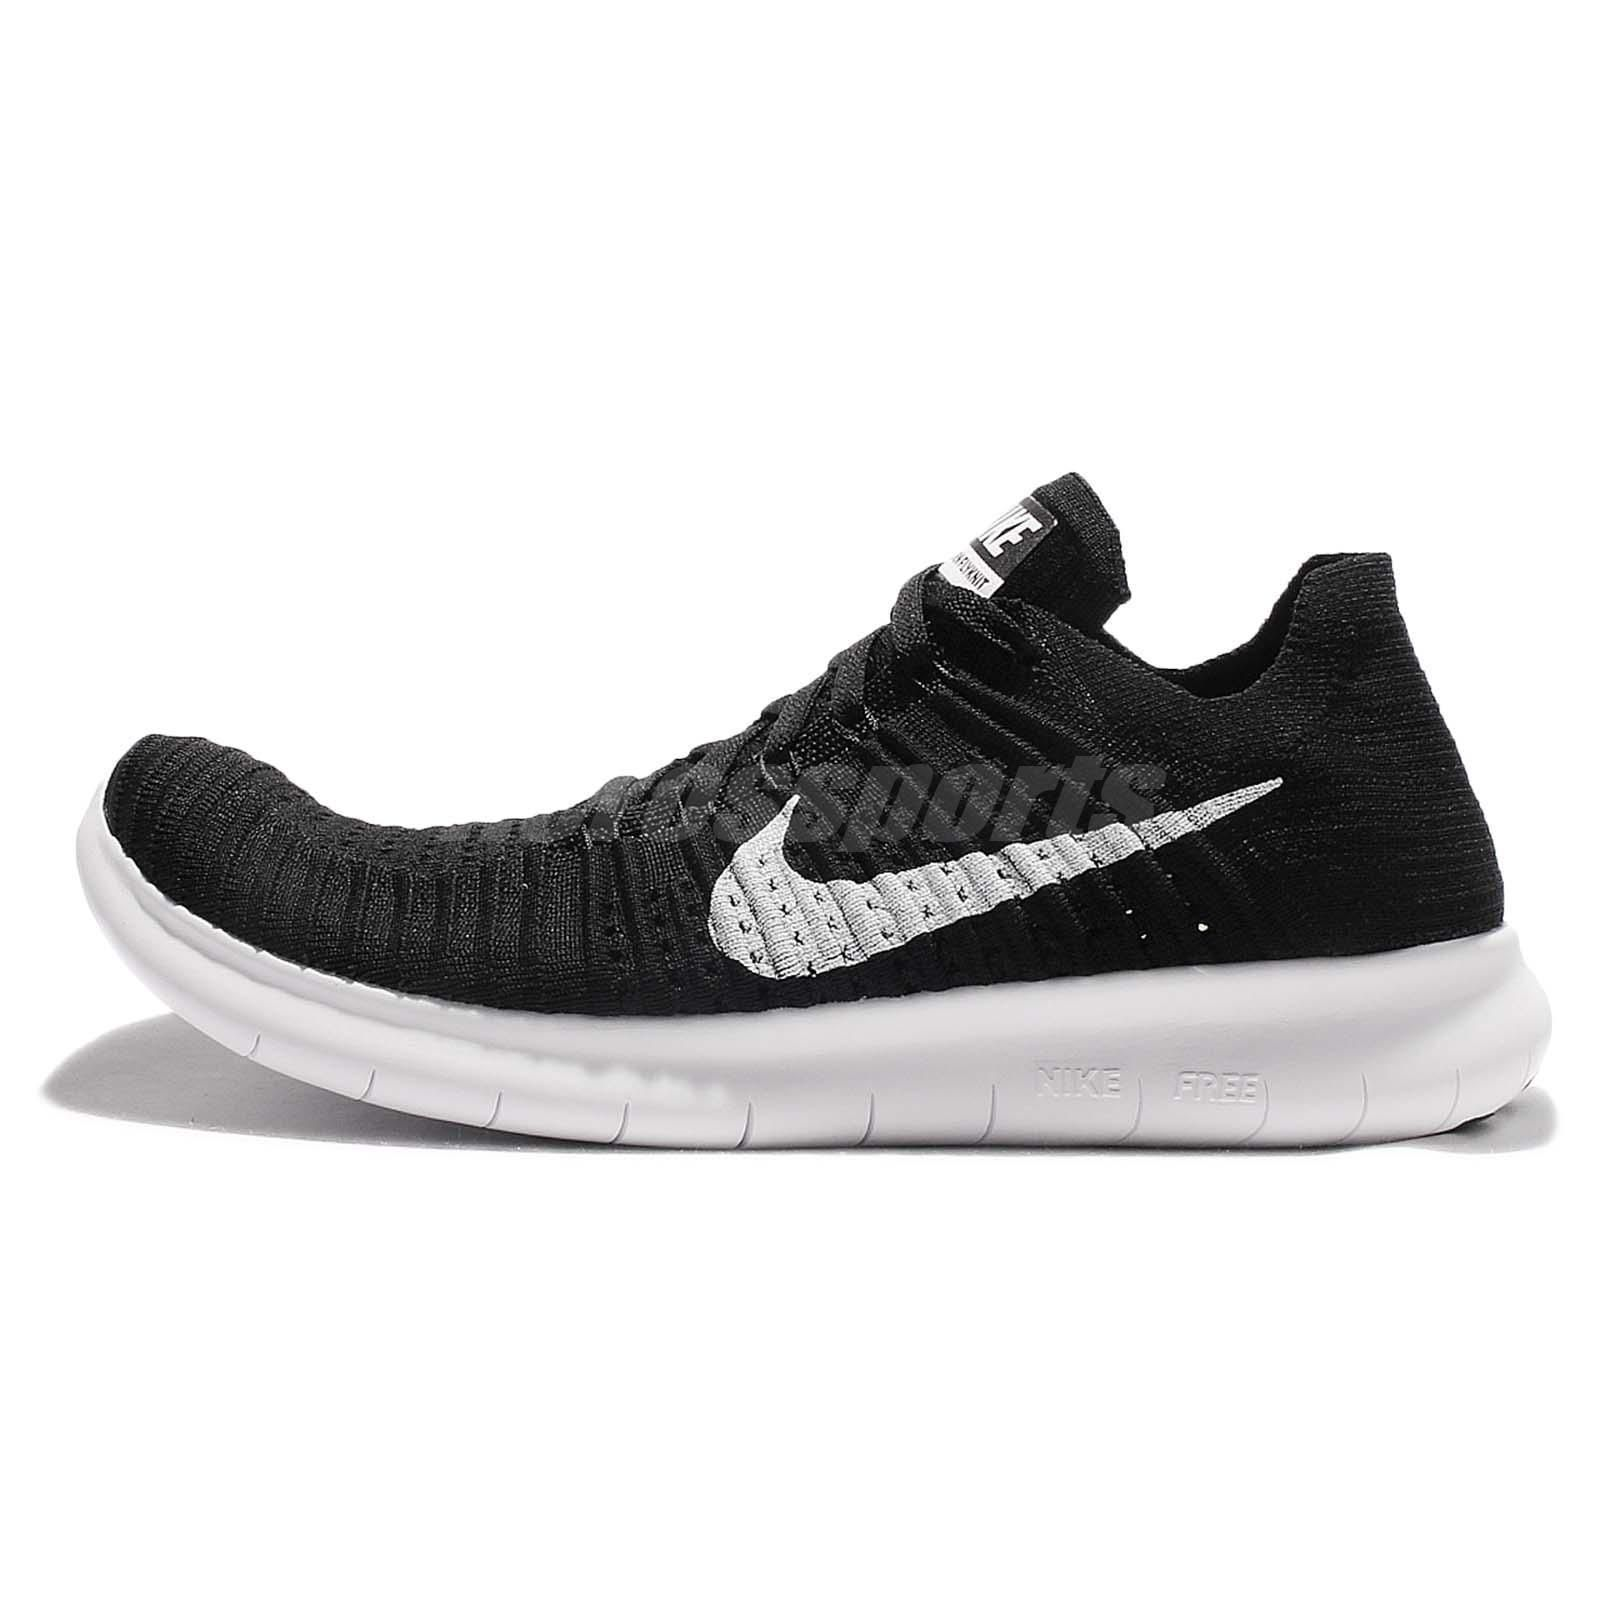 Nike Free RN Flyknit 4.0 Run Black White Mens Running Shoes Trainers  831069-001